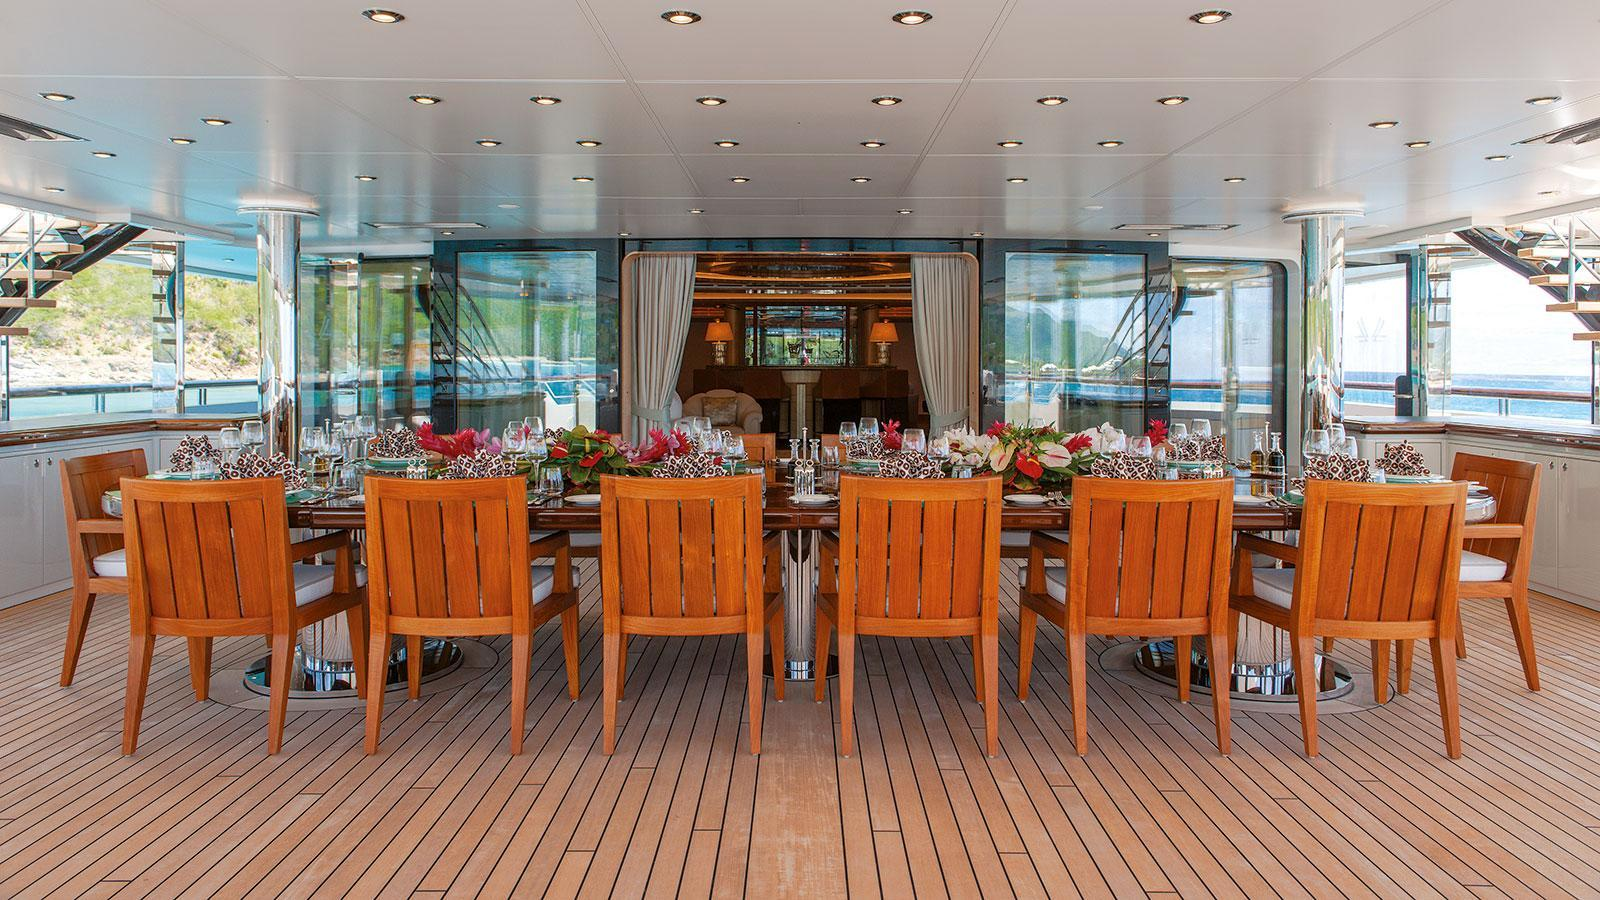 quattroelle-motor-yacht-lurssen-2013-86m-covered-deck